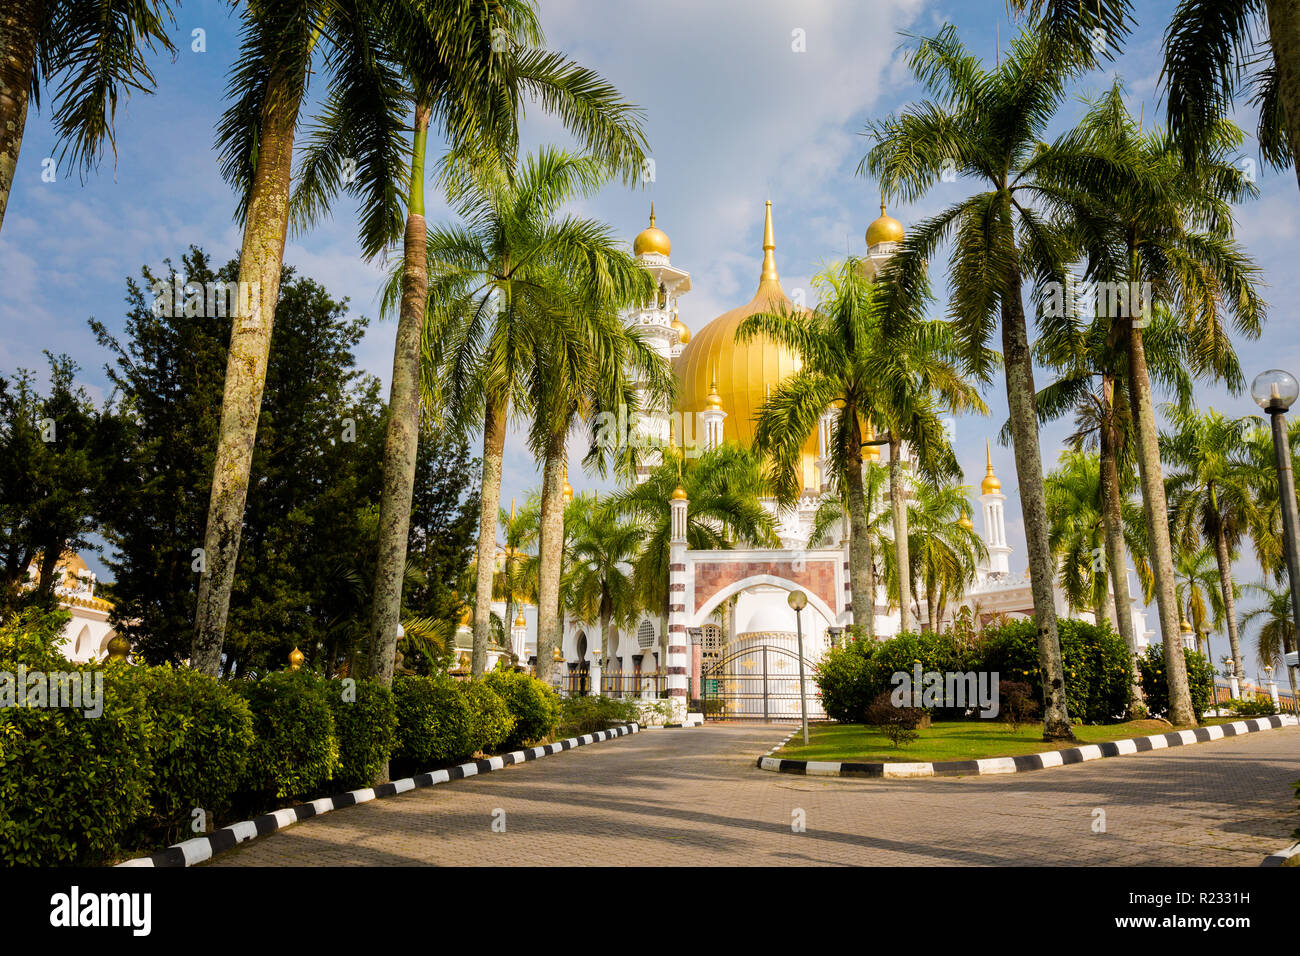 Beautiful architecture of Ubudiah mosque in Kuala Kangsar city in Malaysia. Sacral buildings in south east Asia. - Stock Image